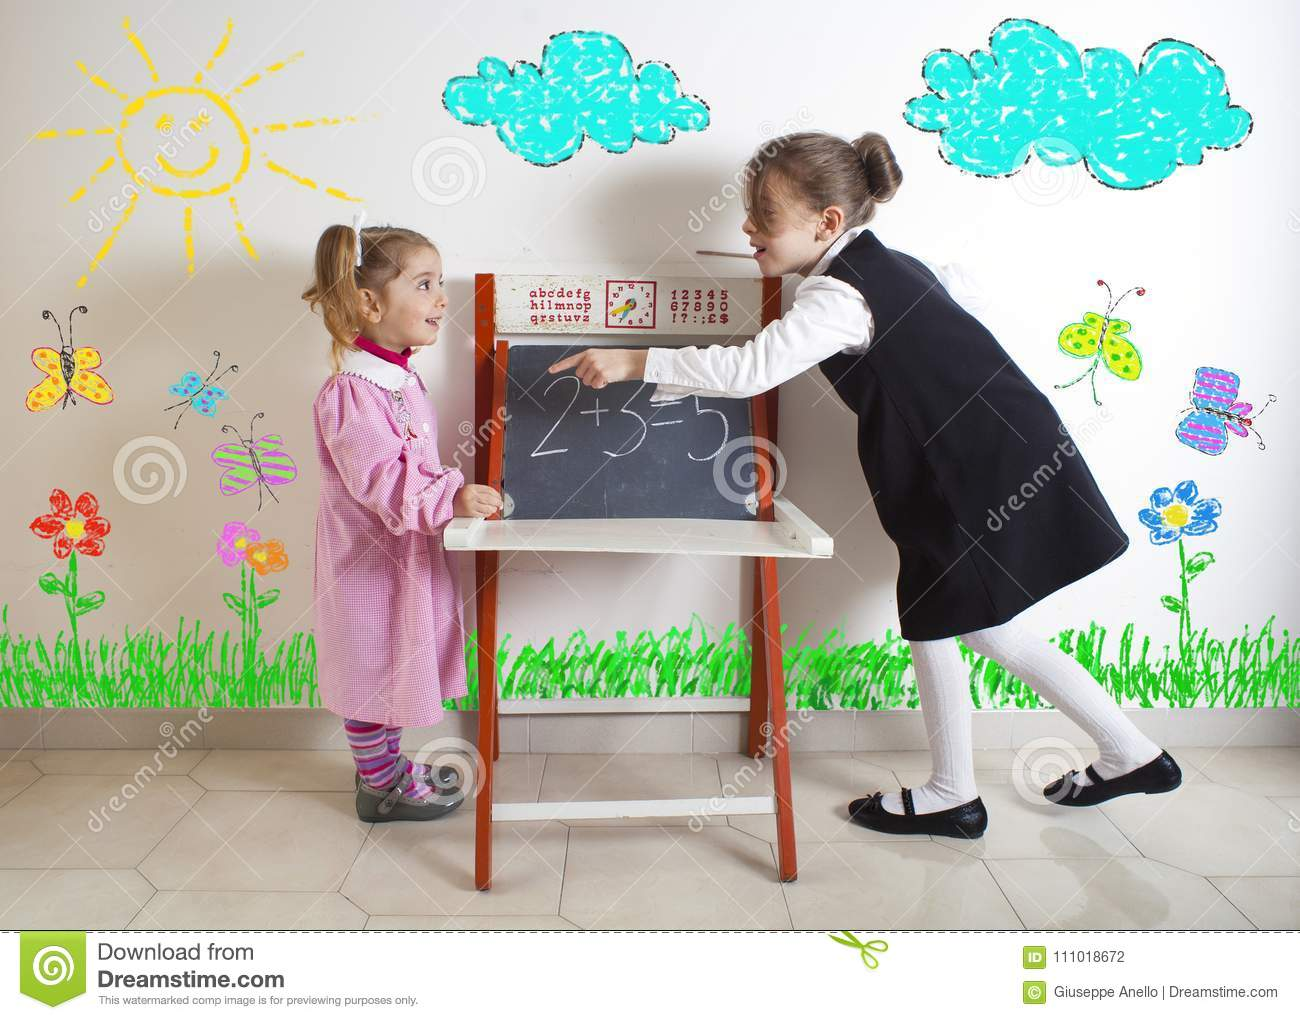 Little girl teaching mathematics to a younger child